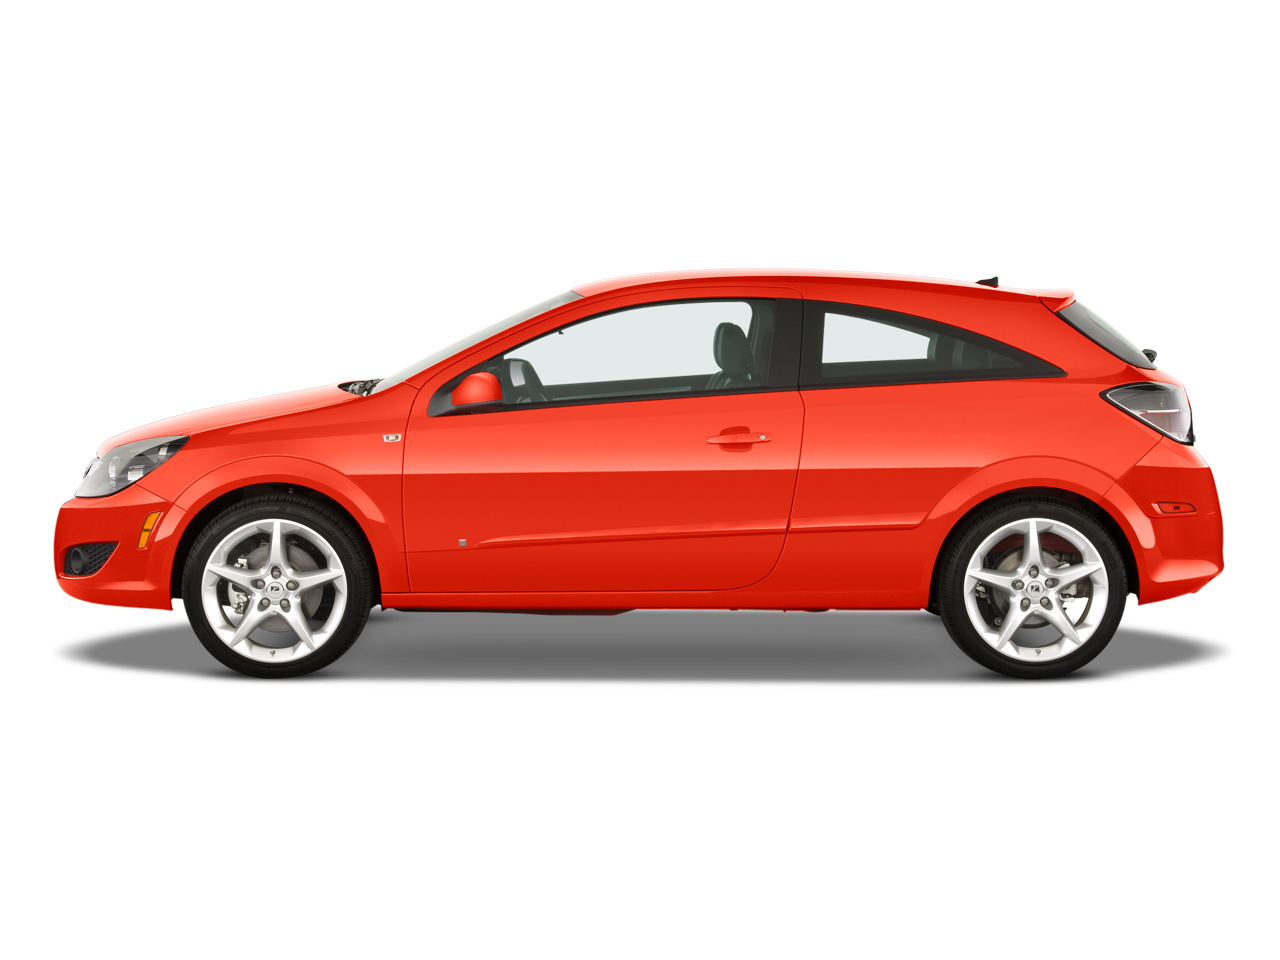 Road clipart side view. Saturn astra png download